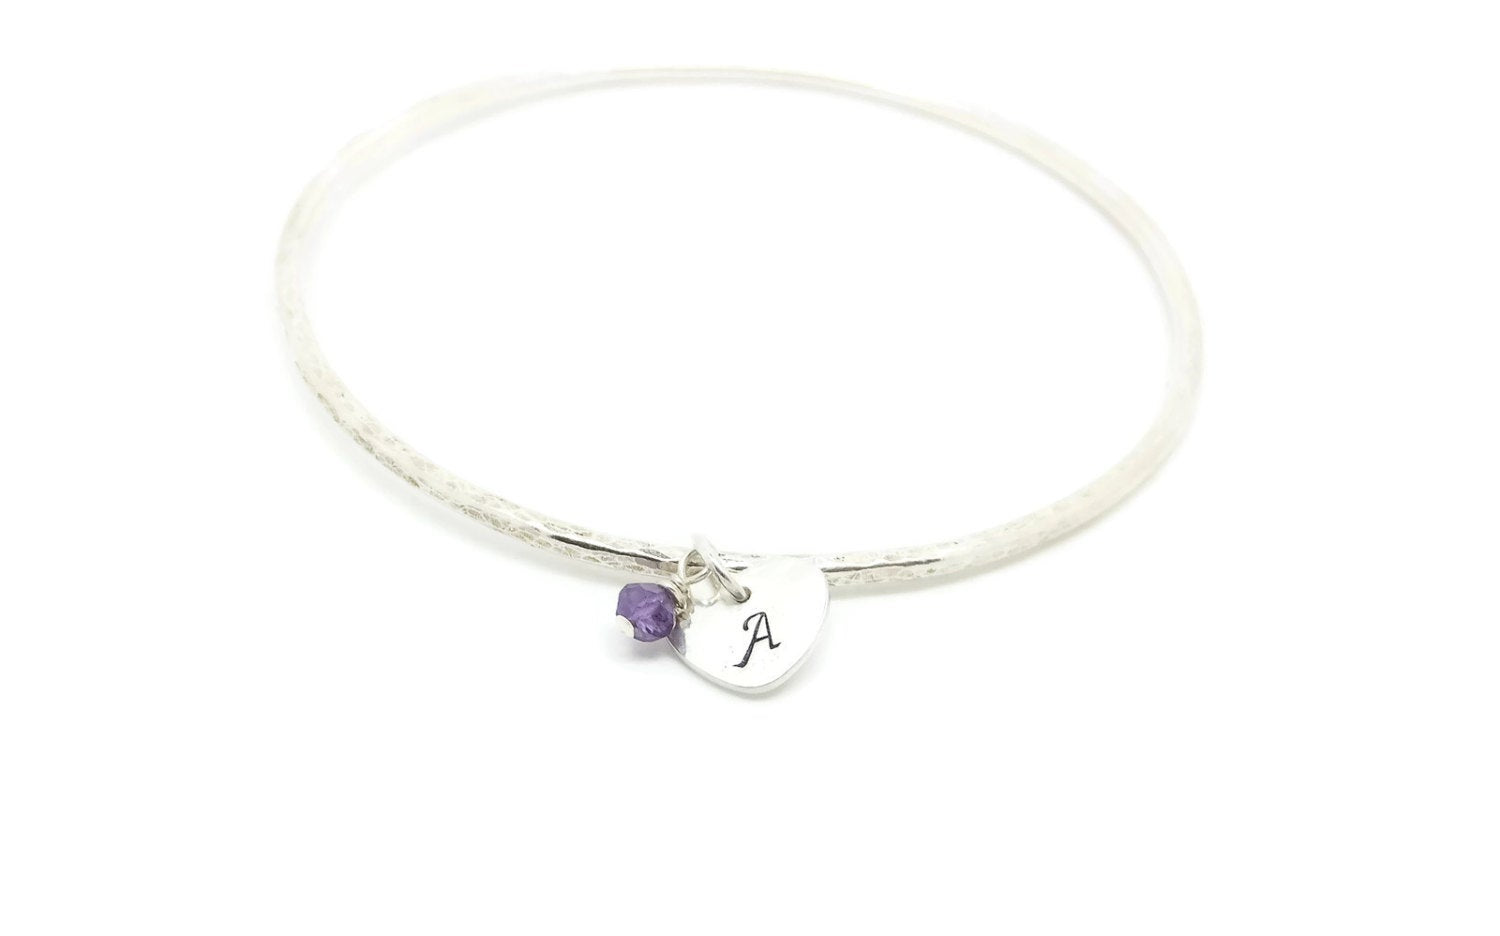 Silver Bangle with Initial Charm